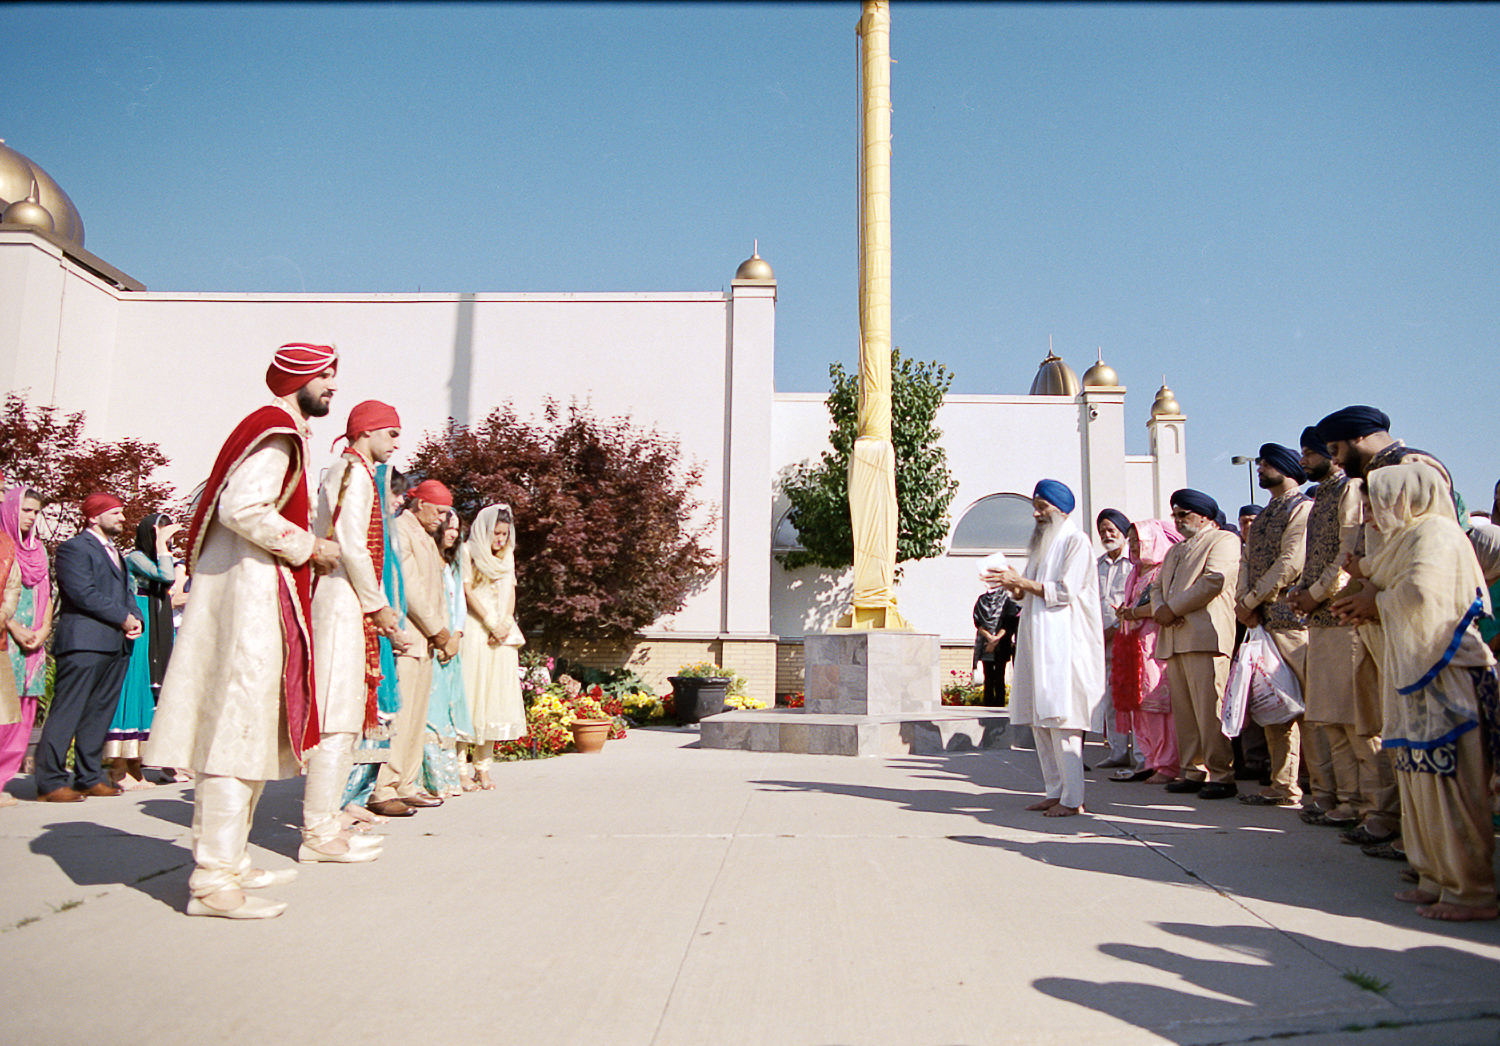 Best-Analog-Film-Wedding-Photographers-in-Toronto-3B-Photography-Brian-B-Bettencourt-Leica-M4P-Kodak-Film-Portra-400-BRide-getting-ready-sunrise-light-on-traditional-indian-Sikh-Wedding-Ceremony-Family-.jpg